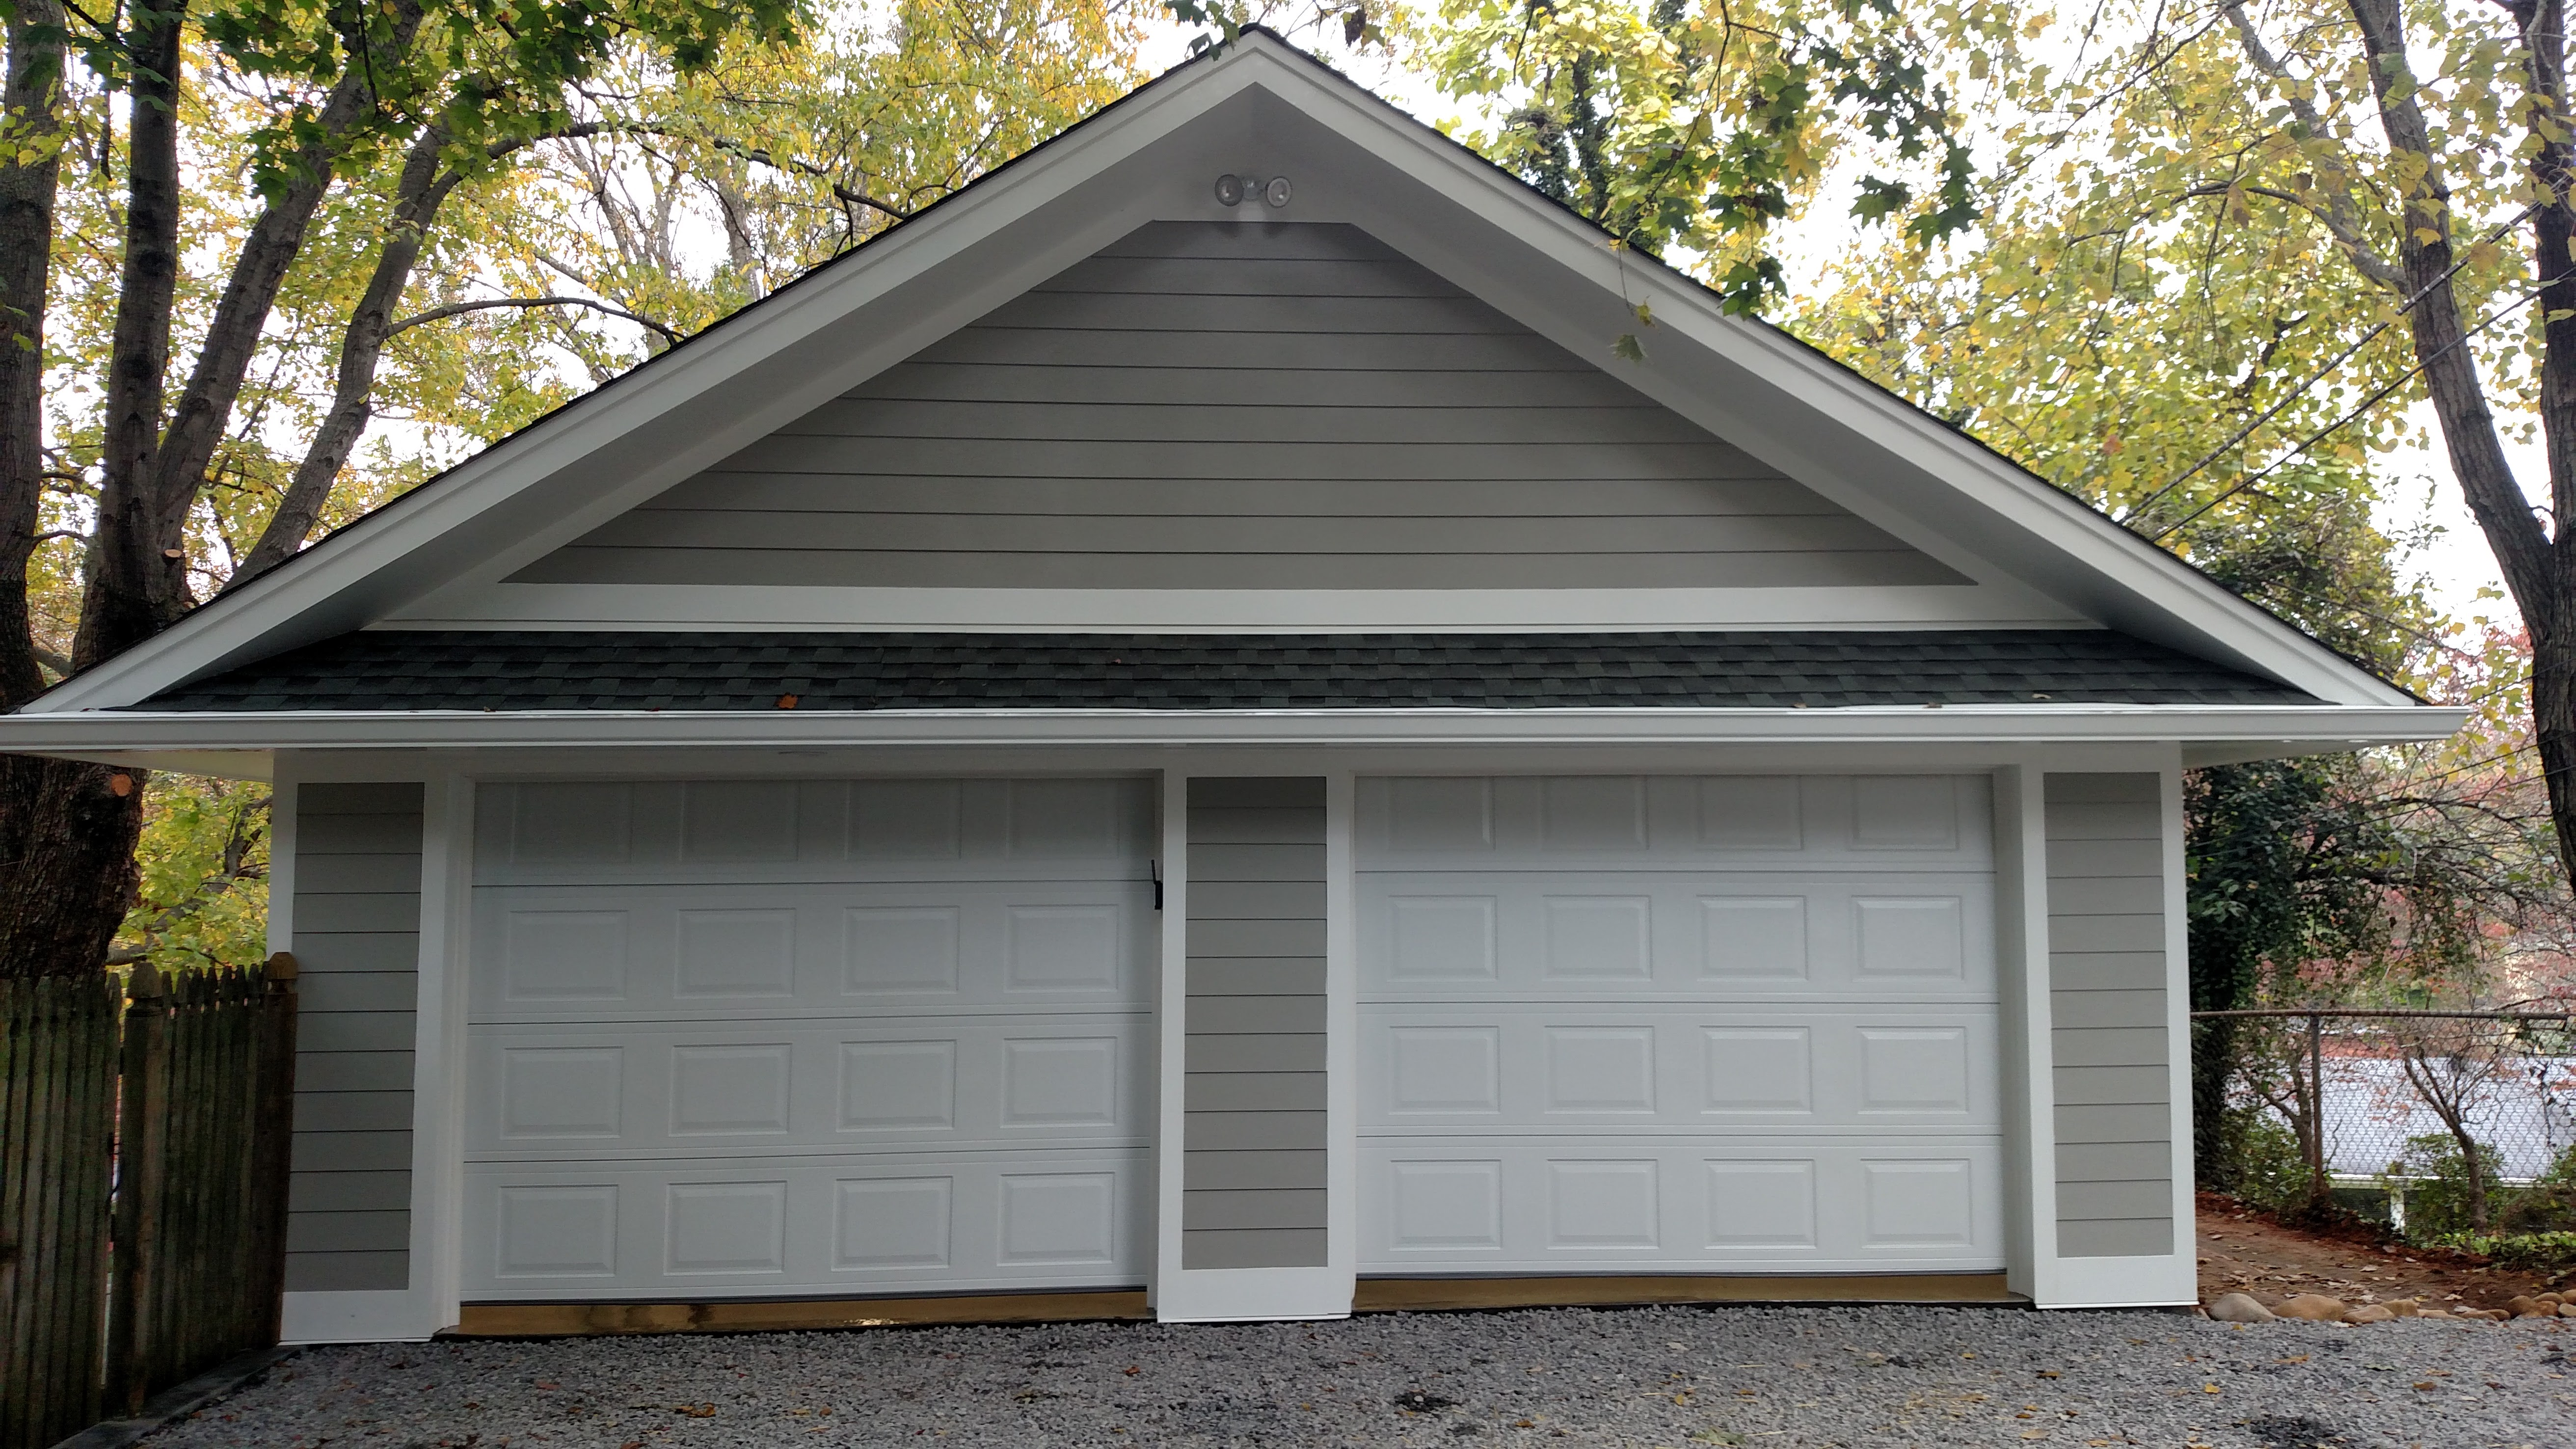 2 car garage completed southerland construction renovation llc img 20151024 124834877